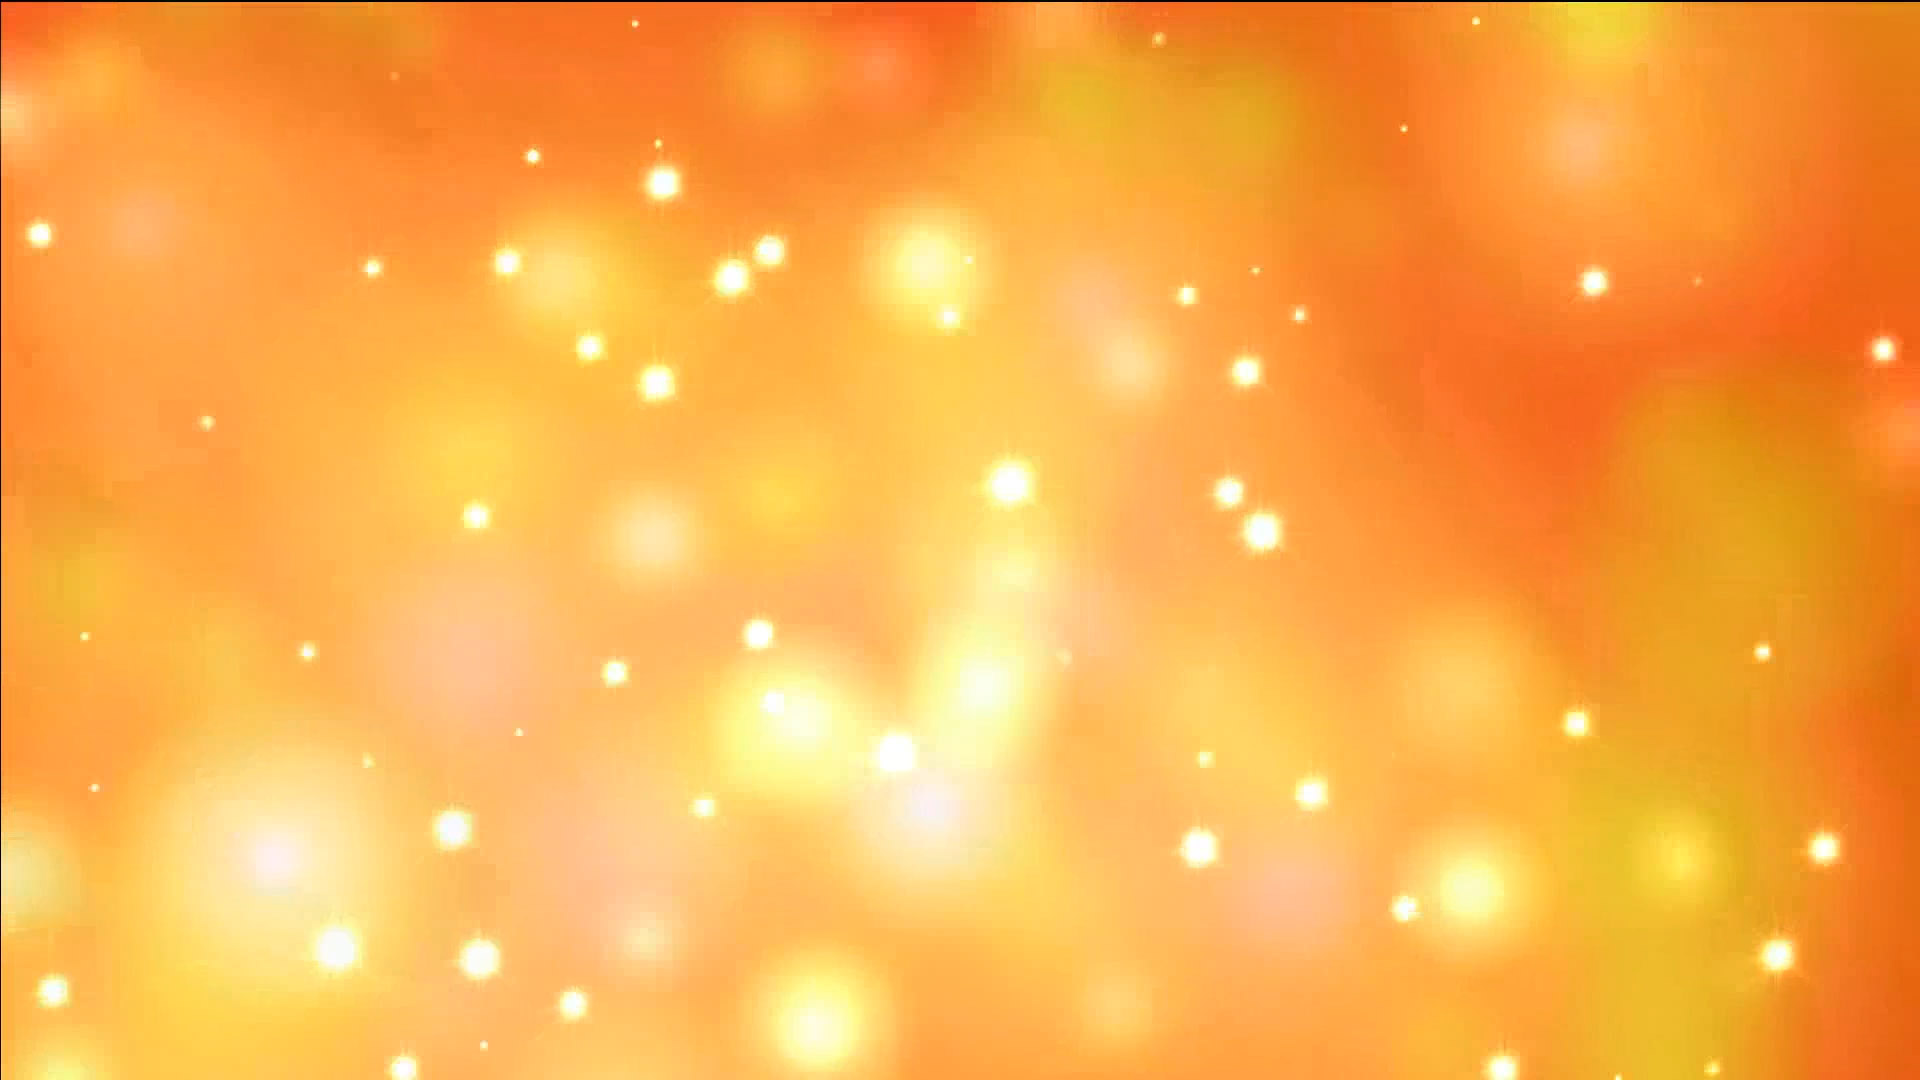 Christian Wallpaper Fall Fast Blinked Video On Orange Backing For Intro Titles In Hd